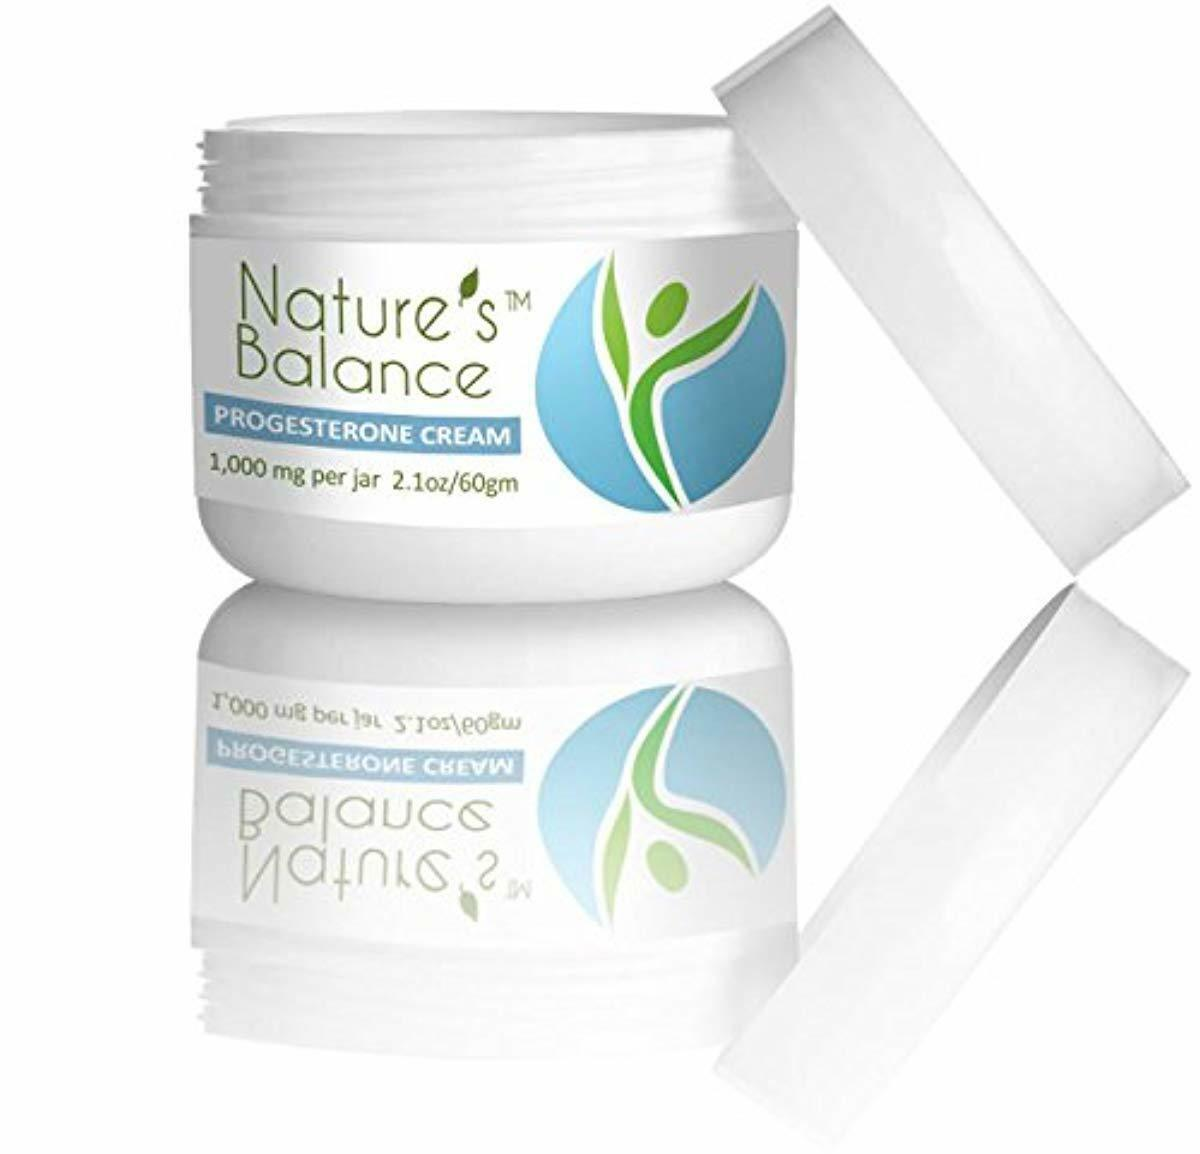 Bio-identical Progesterone Cream Made with all Natural Ingre